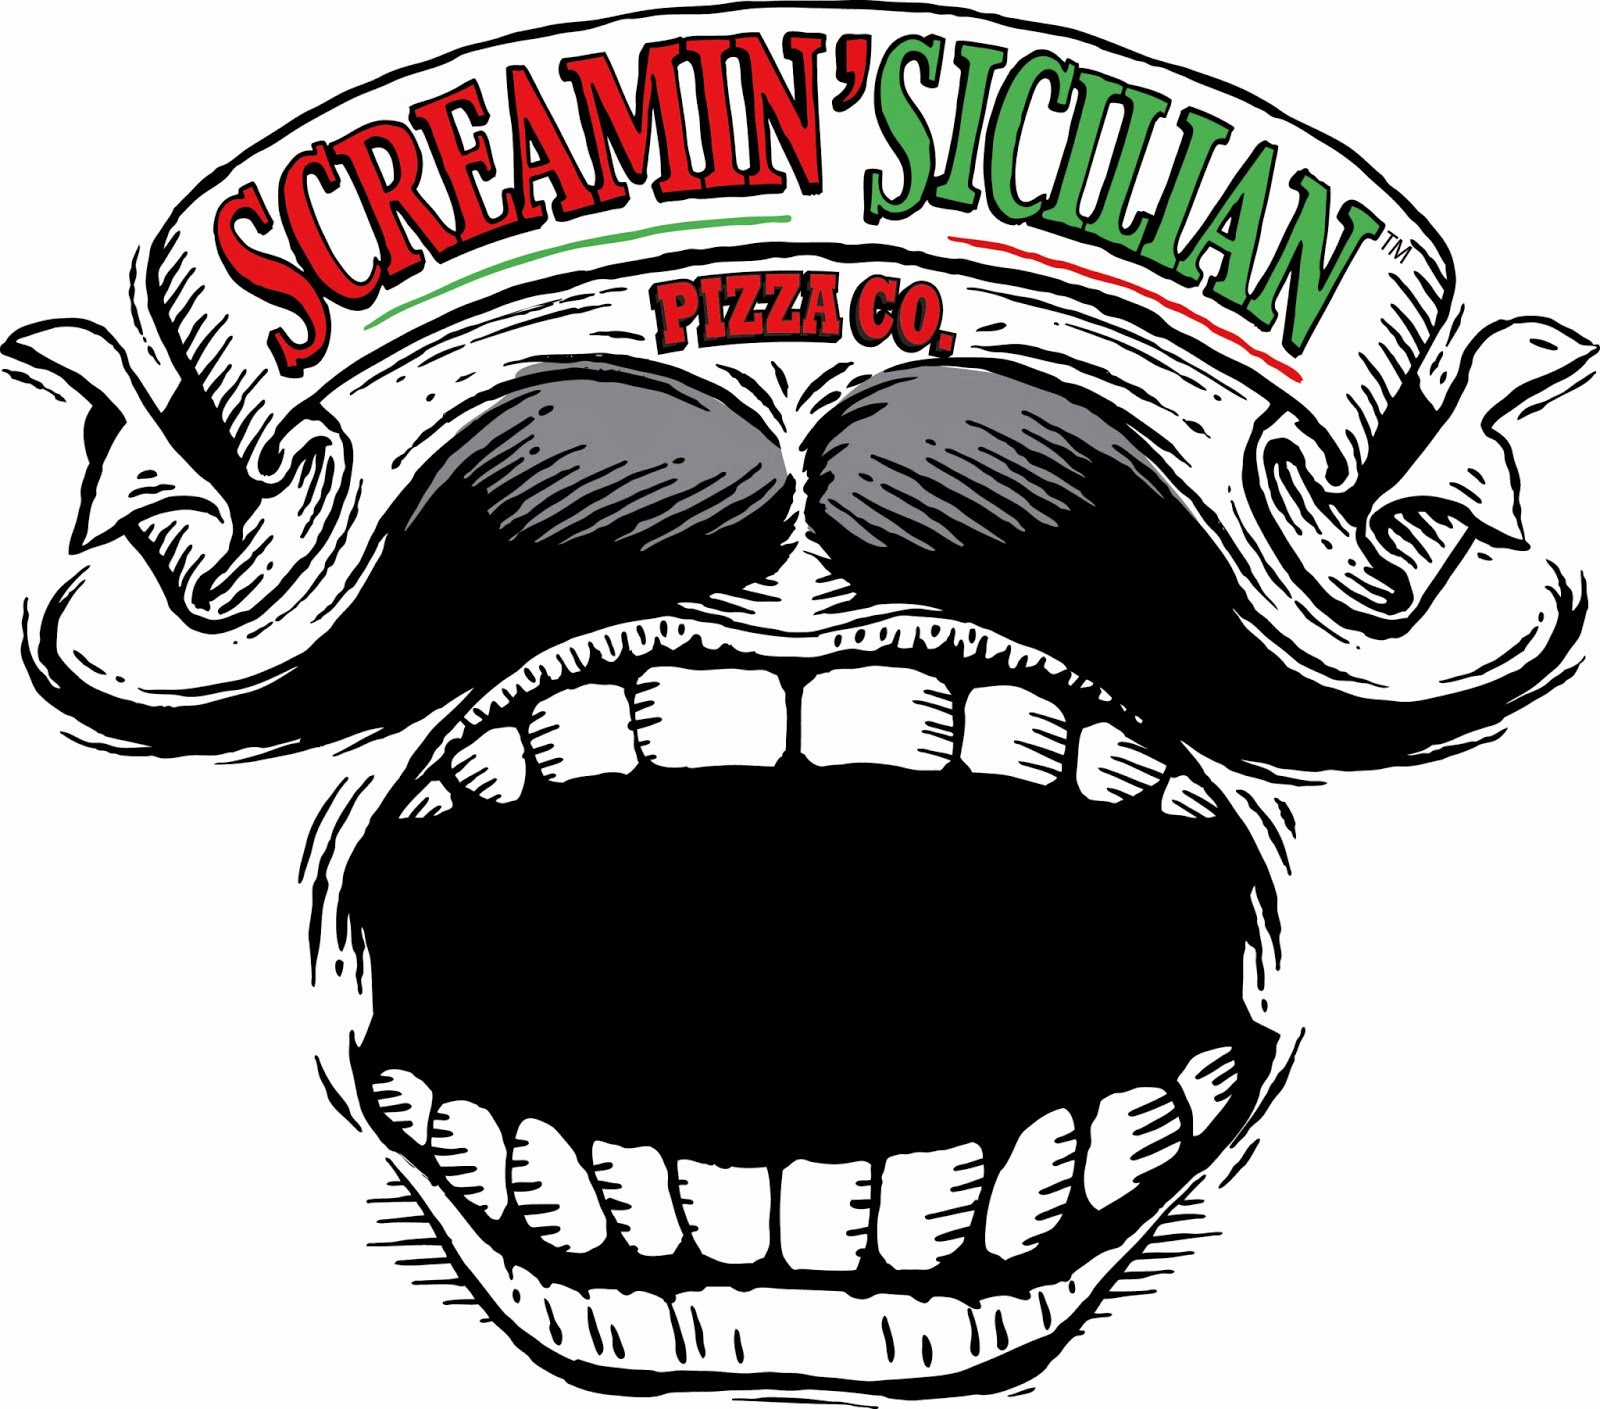 The Screamin' Sicilian Challenge